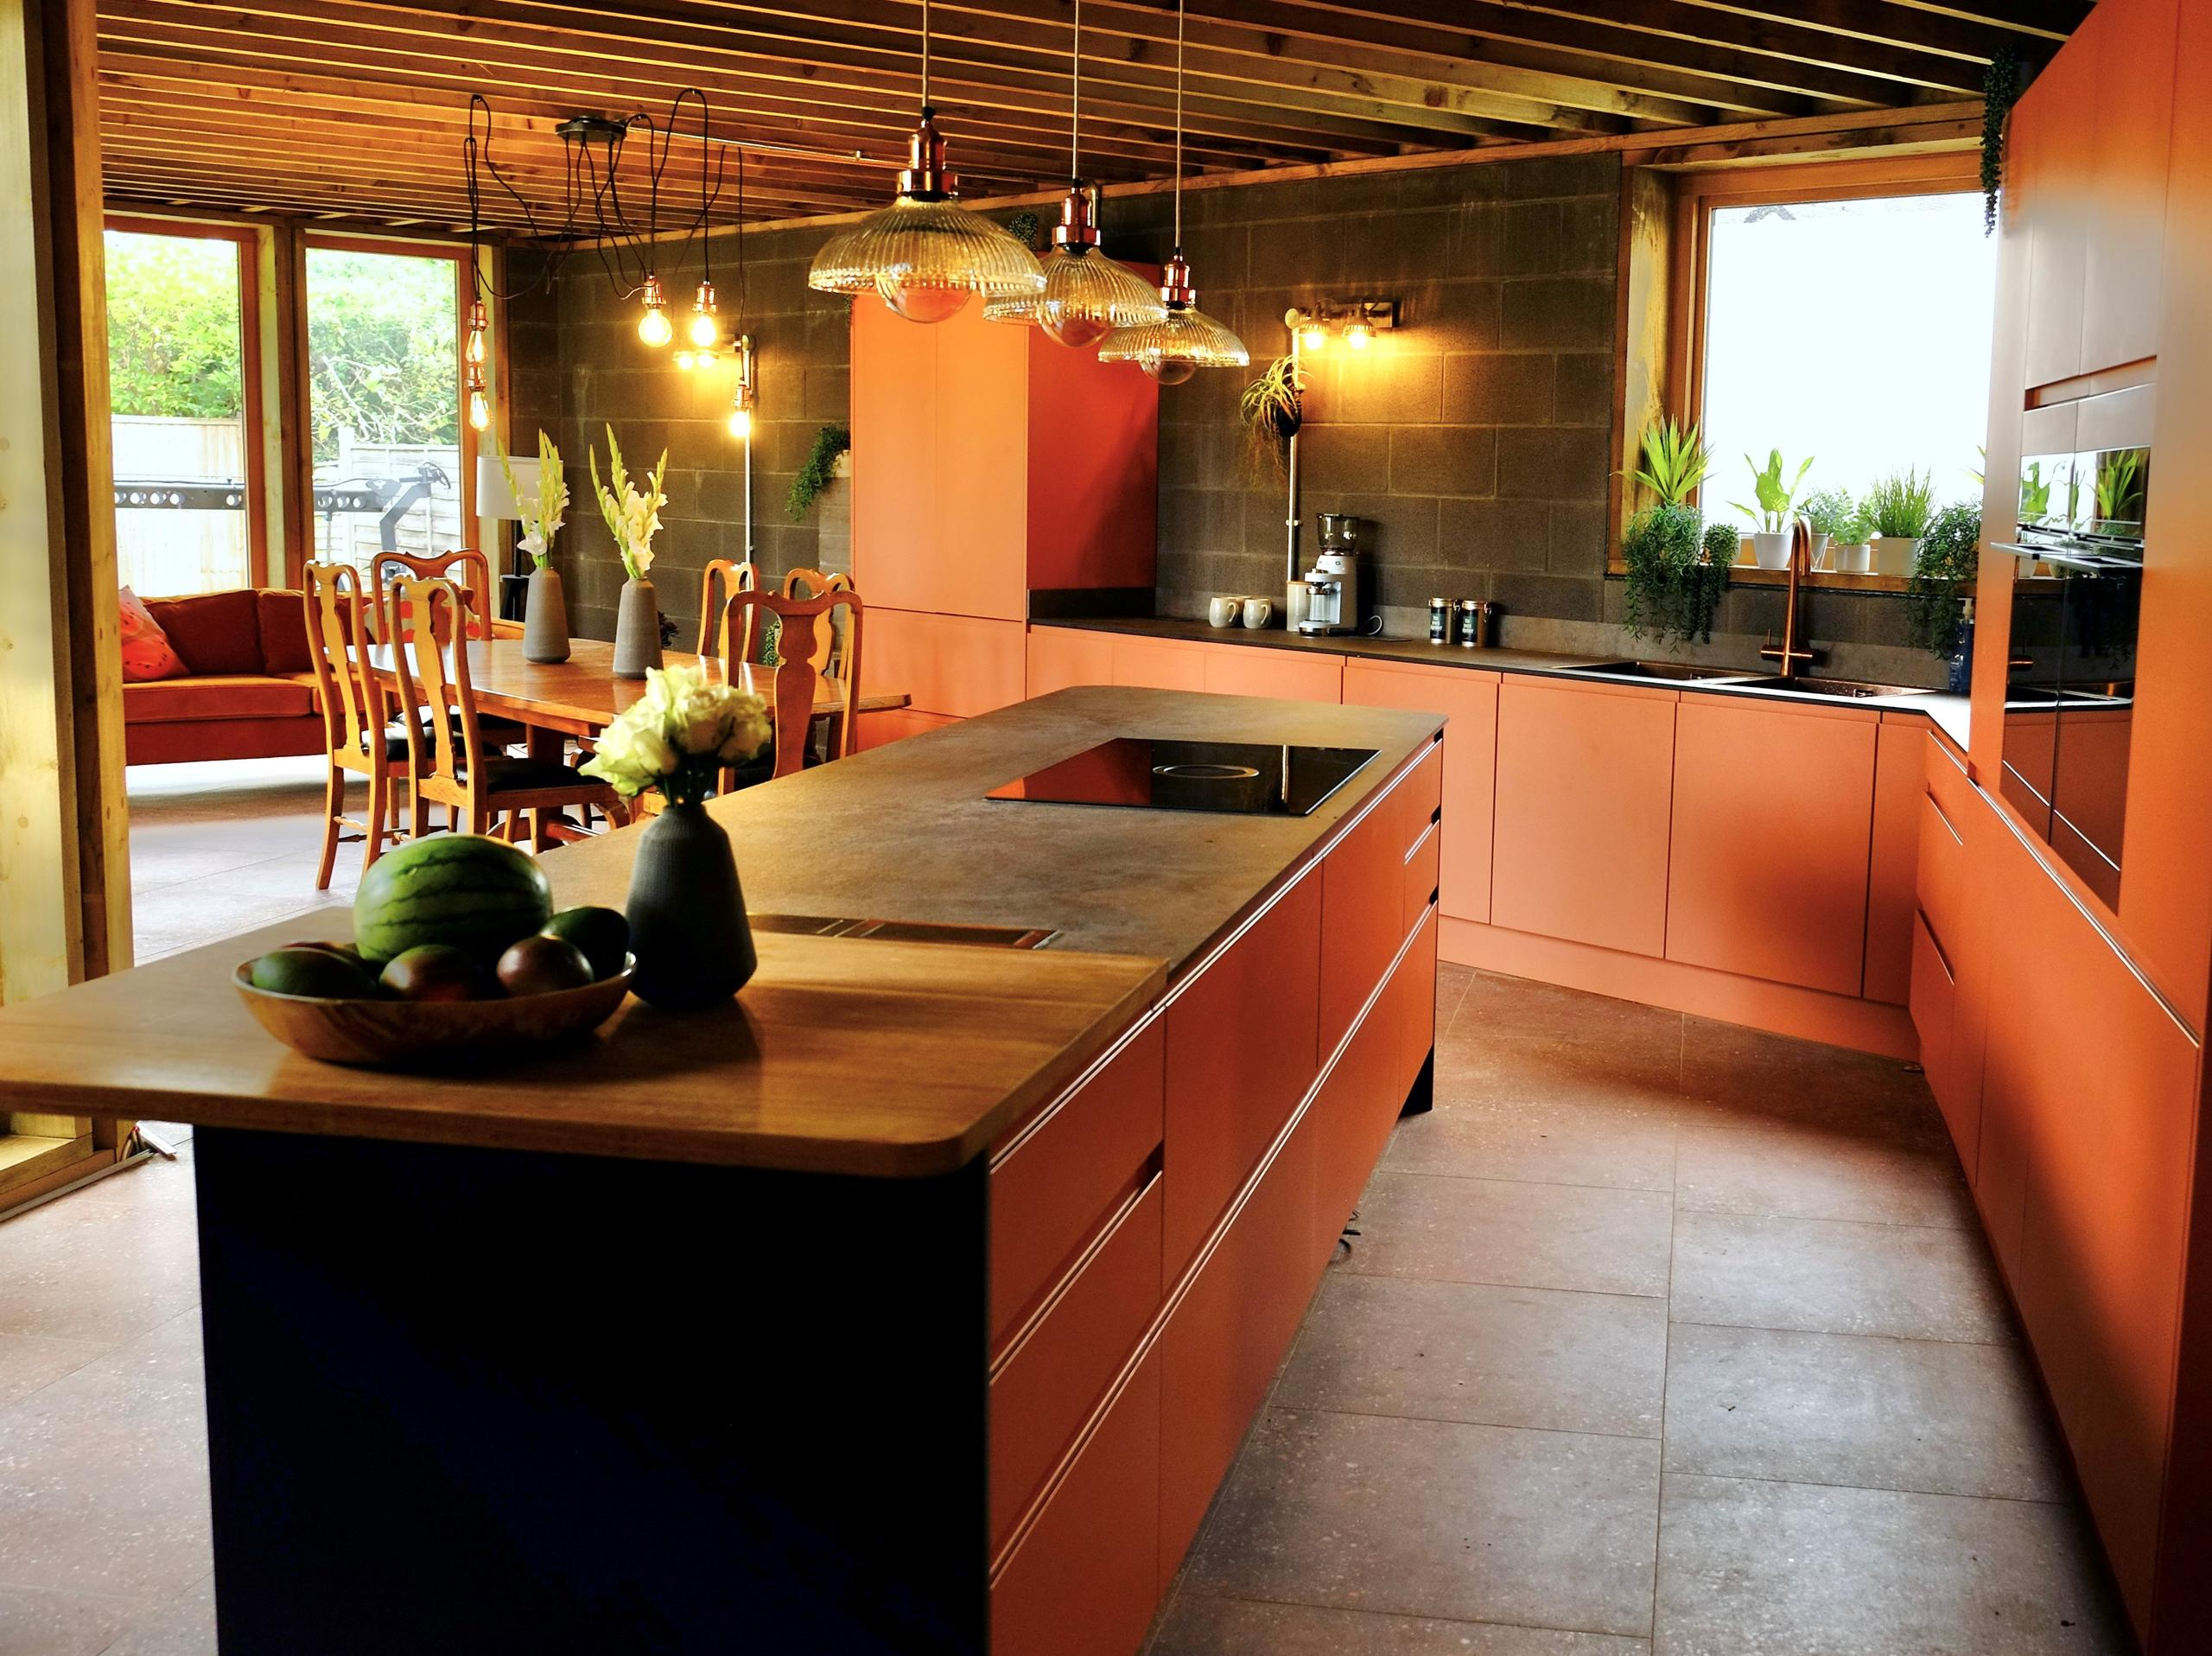 BBC 2 Your Home Made Perfect, featuring Zenith Caldeira